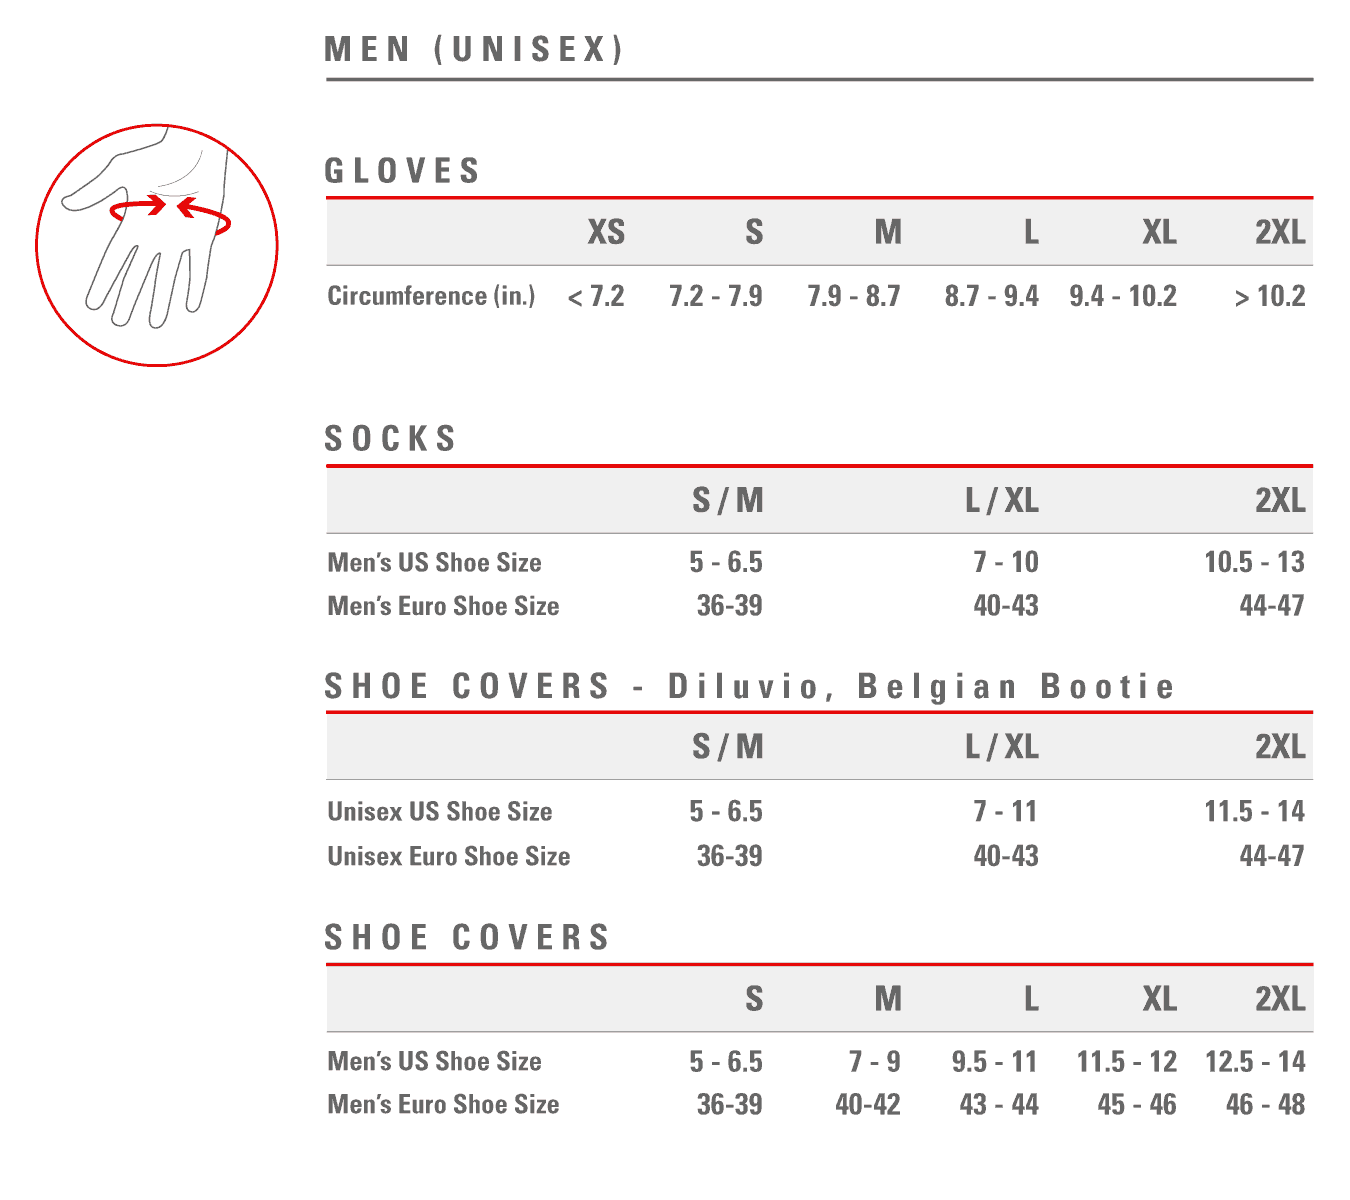 Castelli women's socks sizing